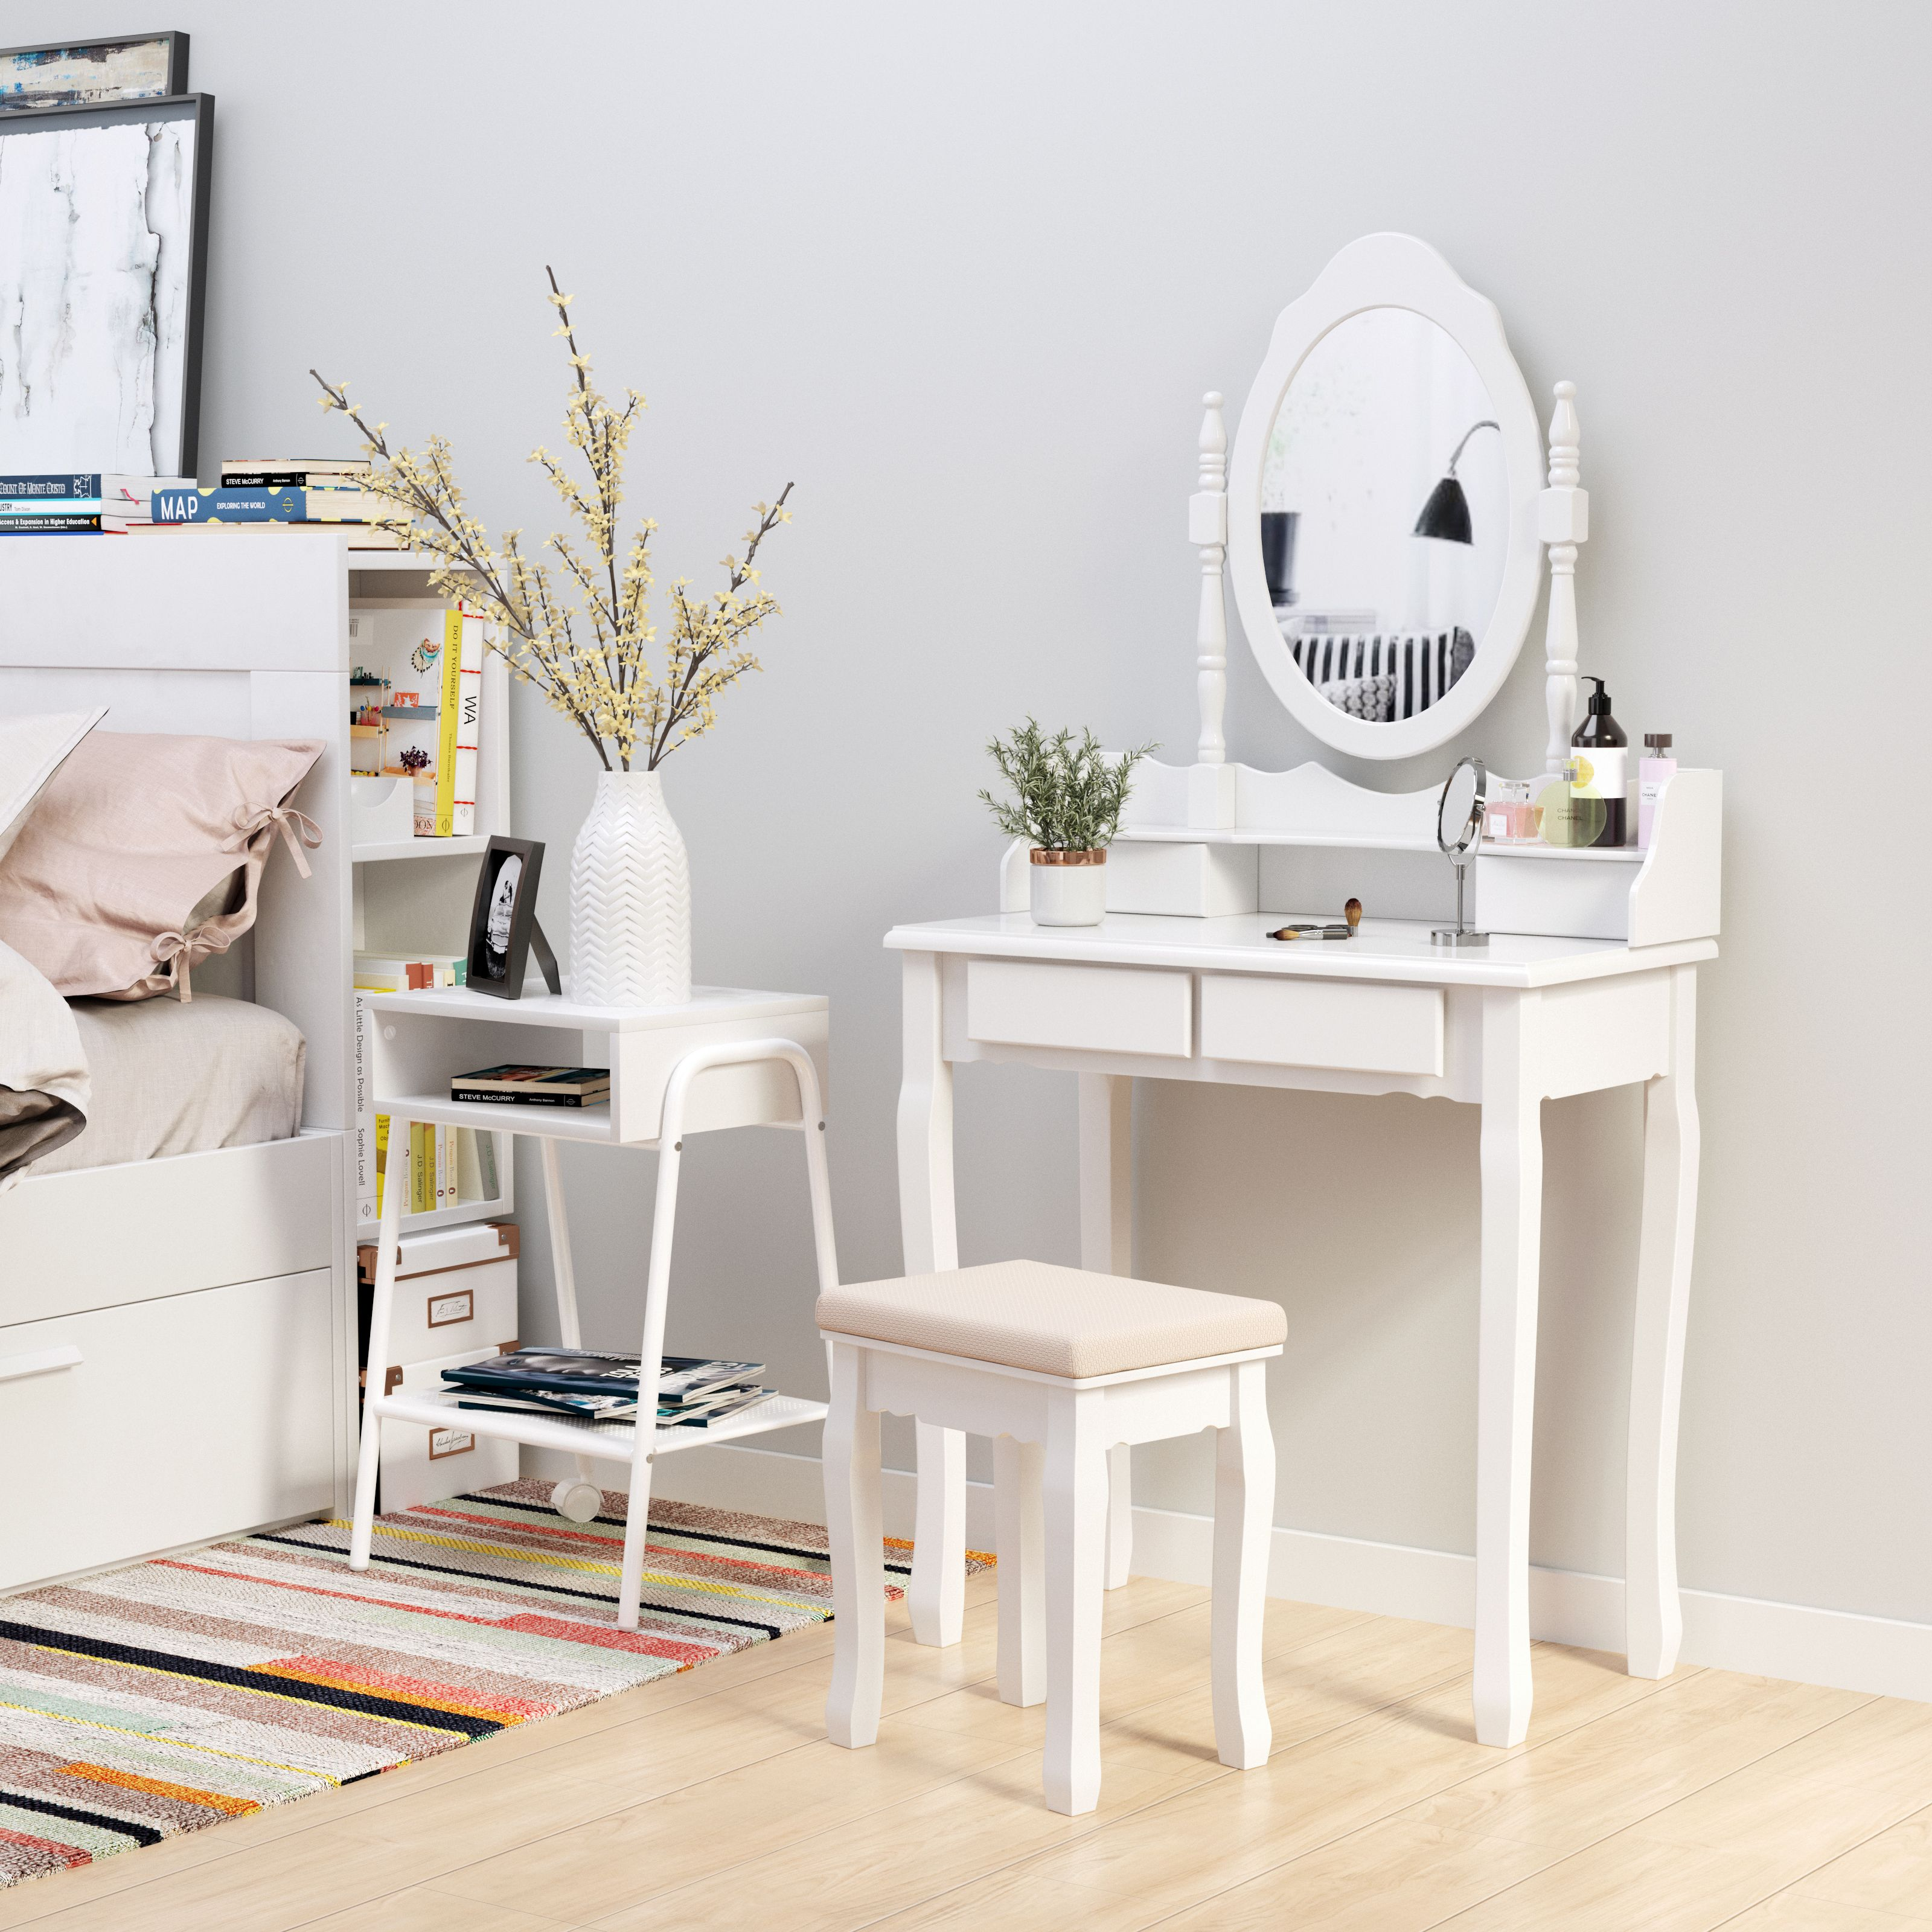 We Present You A High Quality Make Up Tables White At An Unbeatable Low Price Price The Dressing Table Is Made Of High Qualit Schubladen Tisch Schminktisch